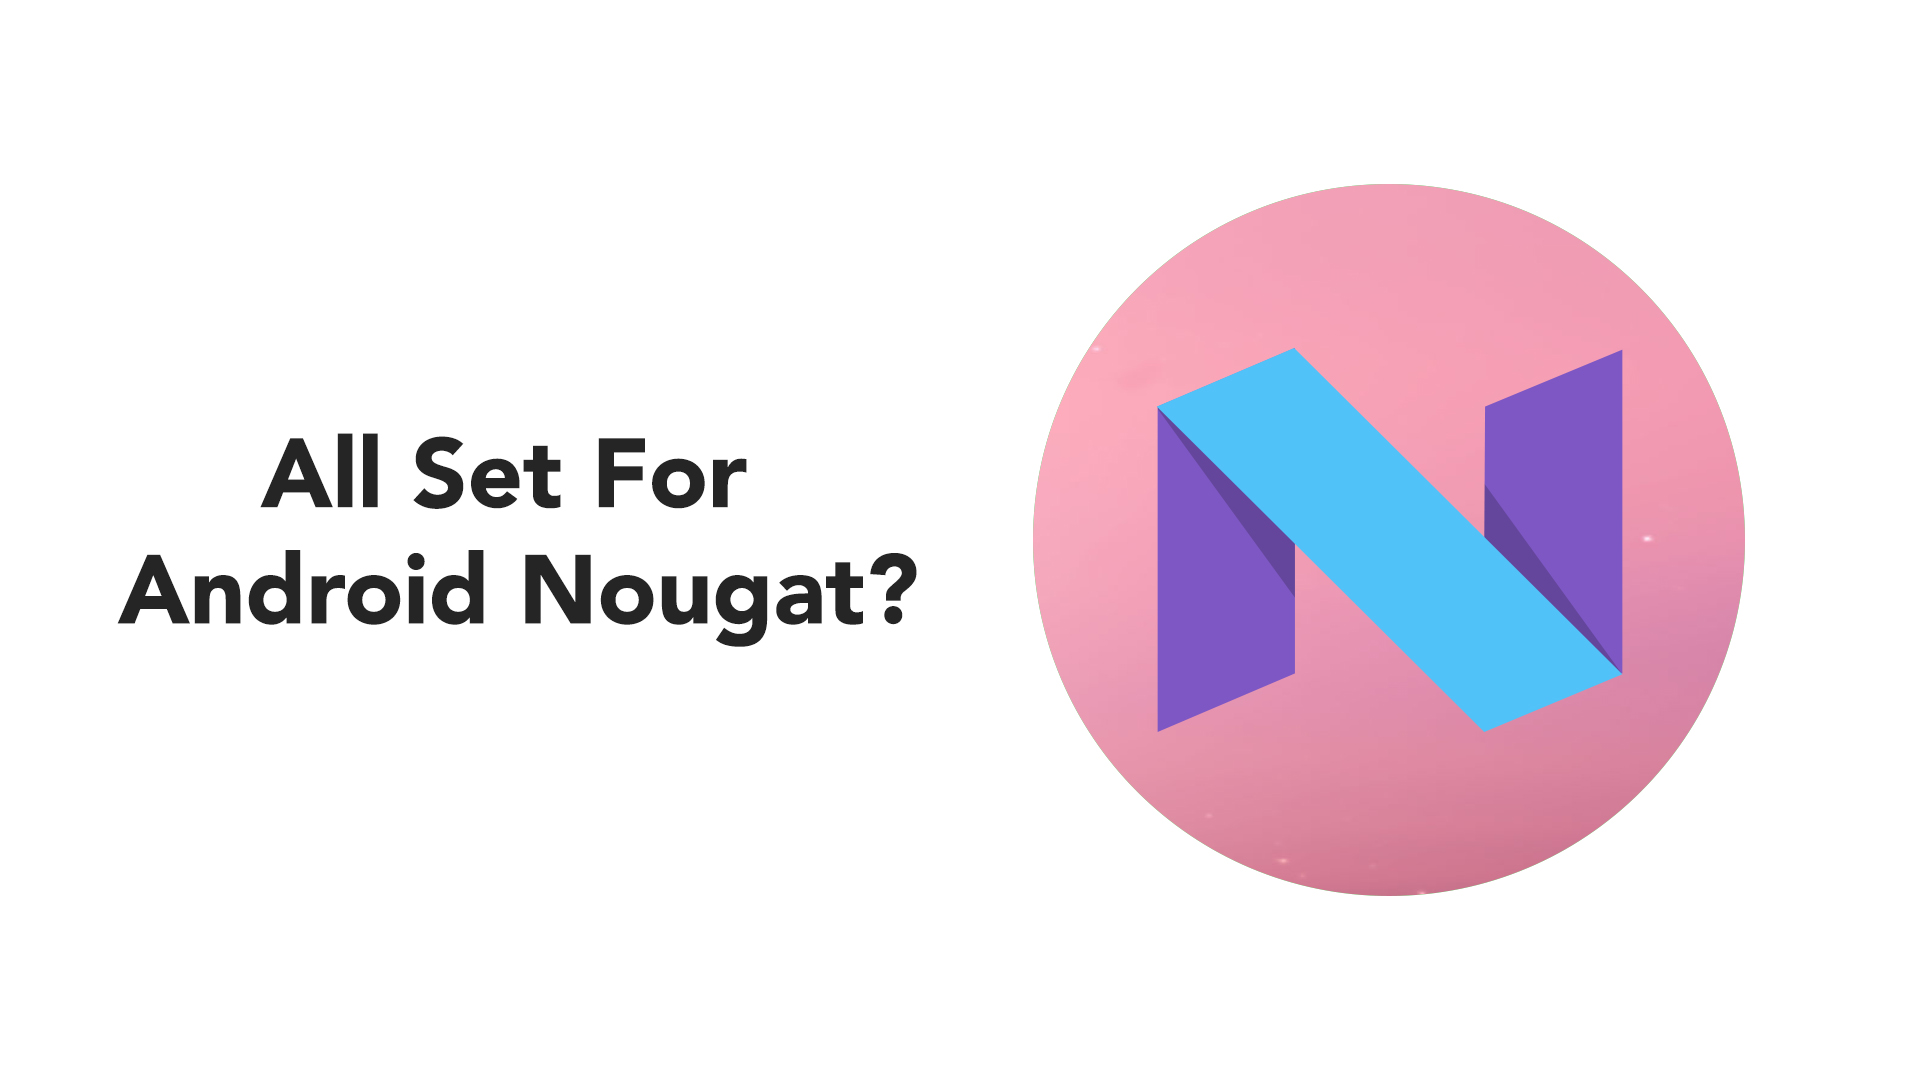 List of features in Android Nougat